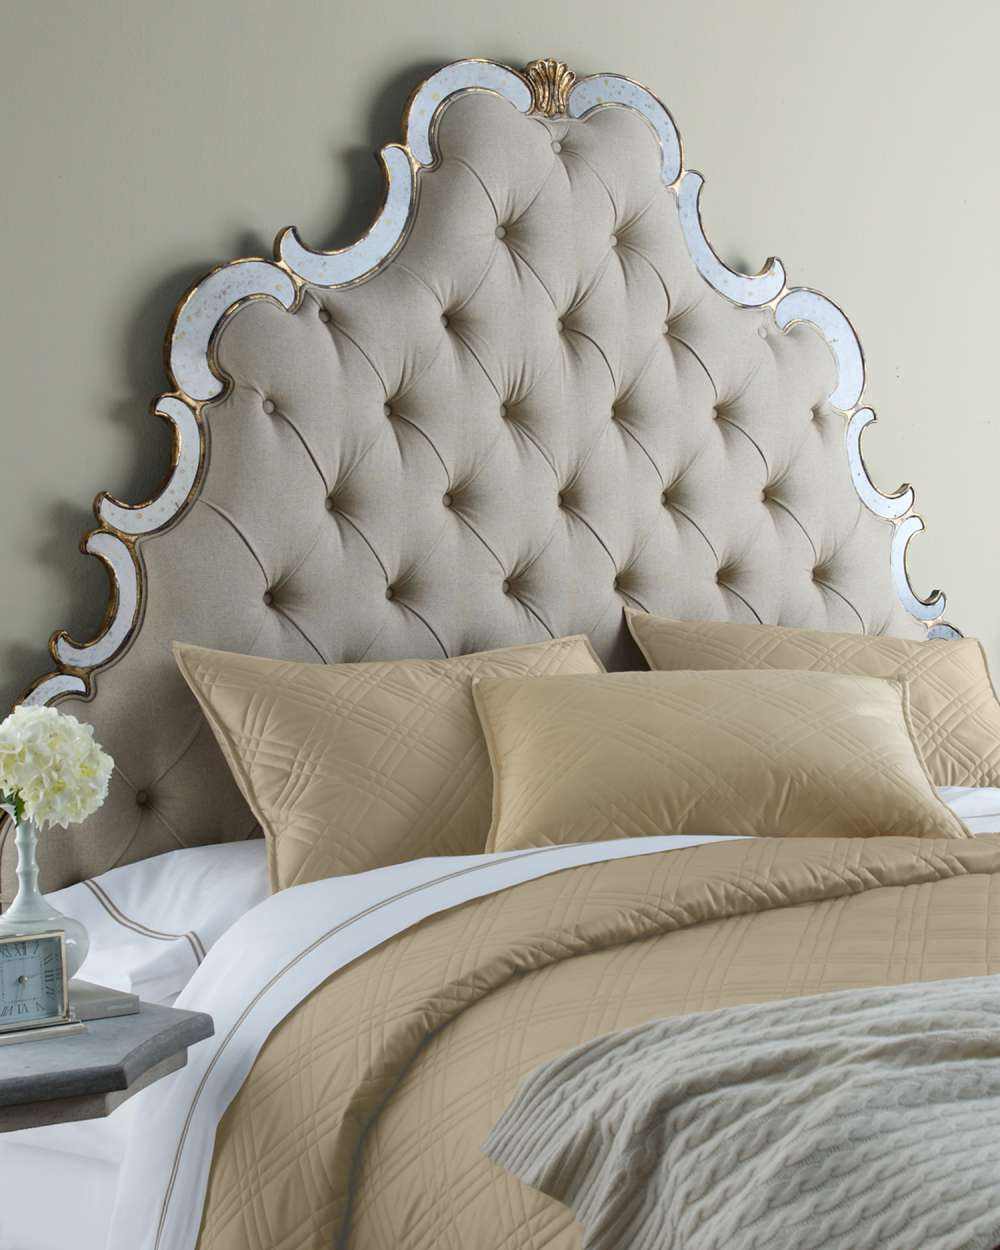 Upholstered upholstered headboards in beige with tab bedding and nightstand before the beige wall for bedroom decor ideas